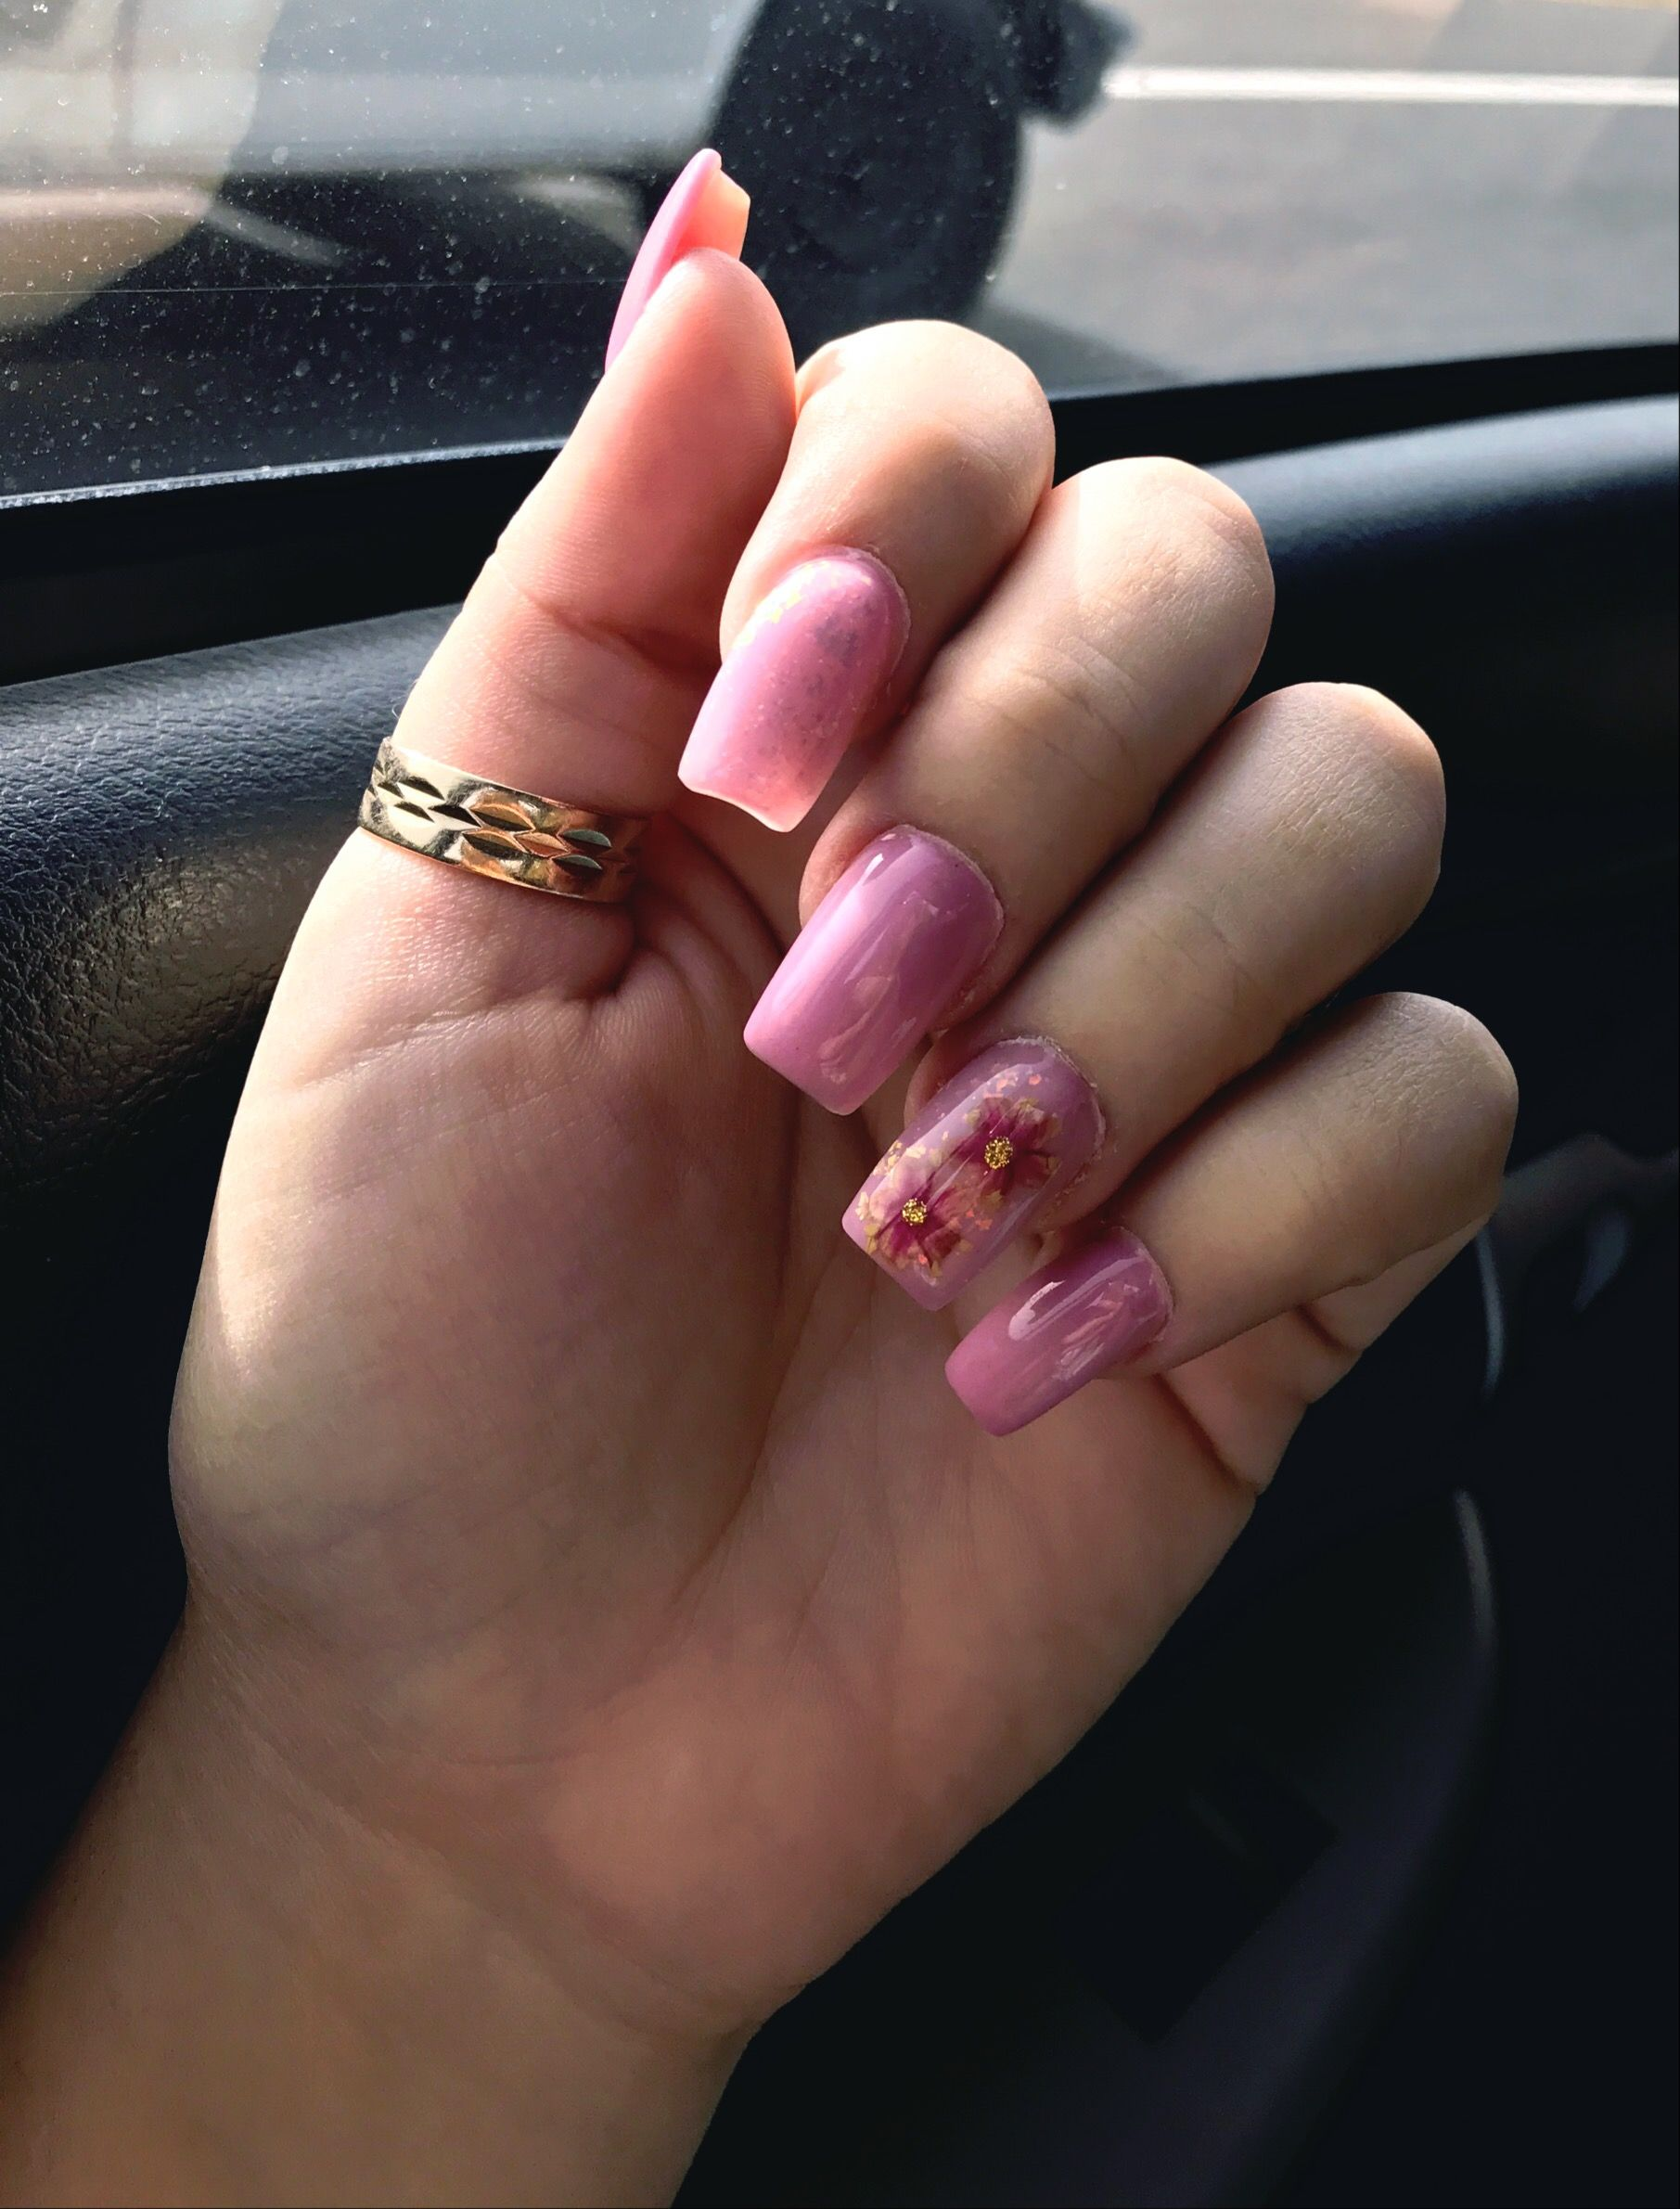 Pink nails with pressed flowers and iridescent flakes | Toenail ...